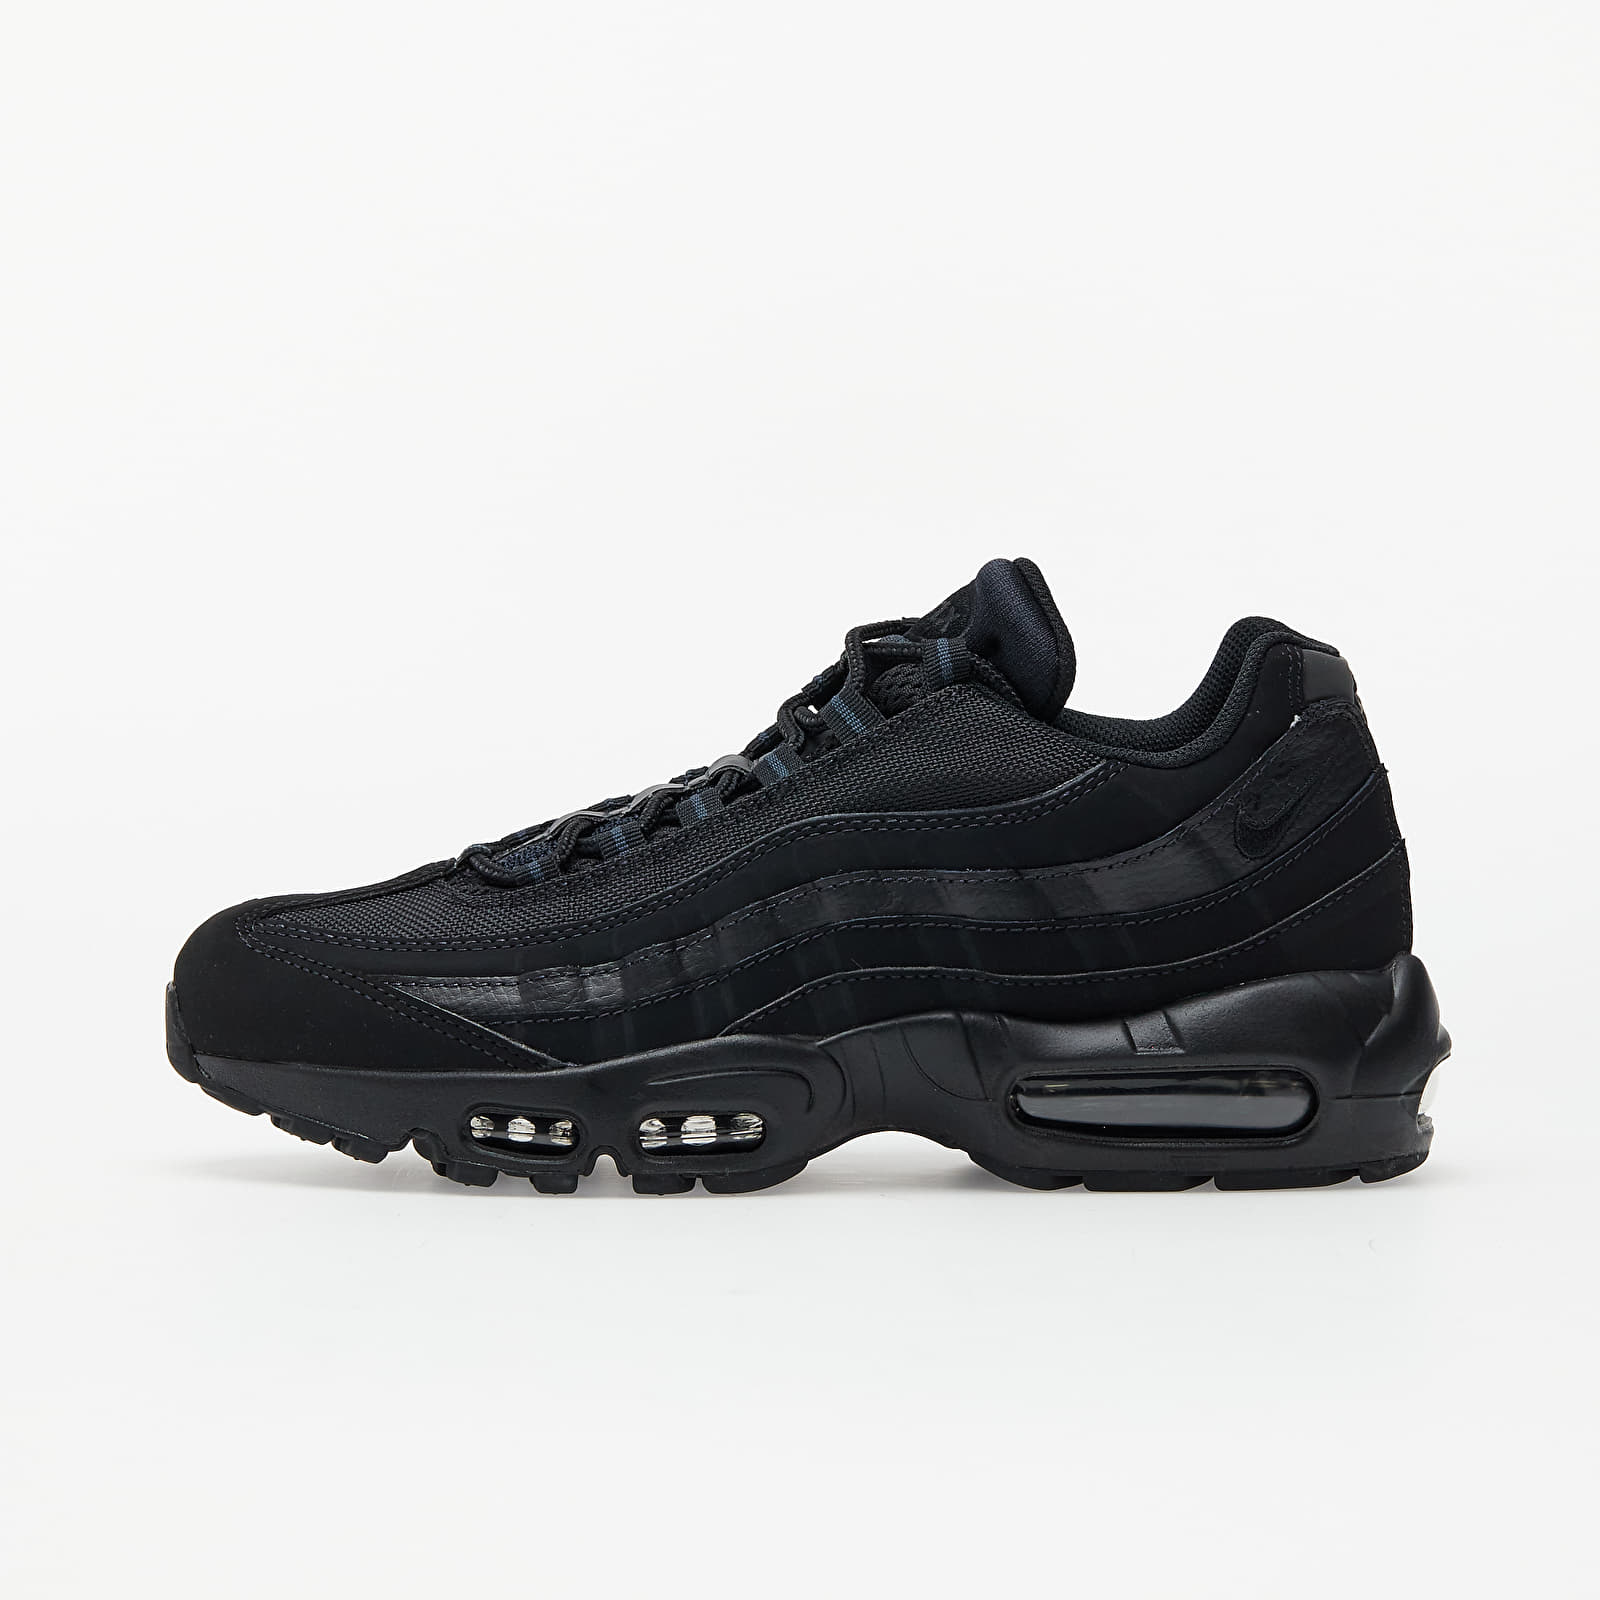 Nike Air Max 95 Black/ Black-Anthracite EUR 42.5